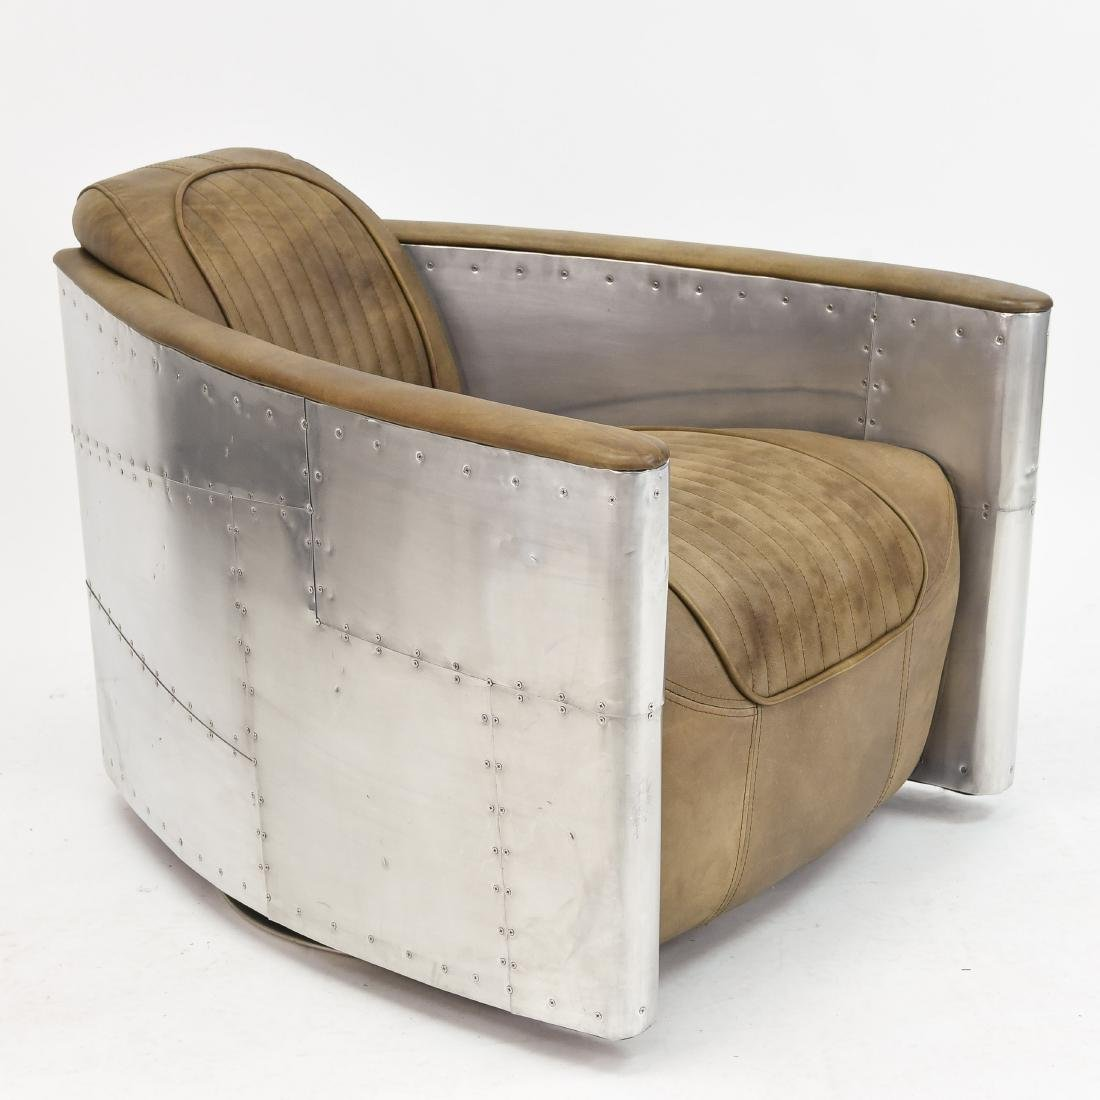 ALUMINUM AND LEATHER AIRCRAFT LOUNGE CHAIR